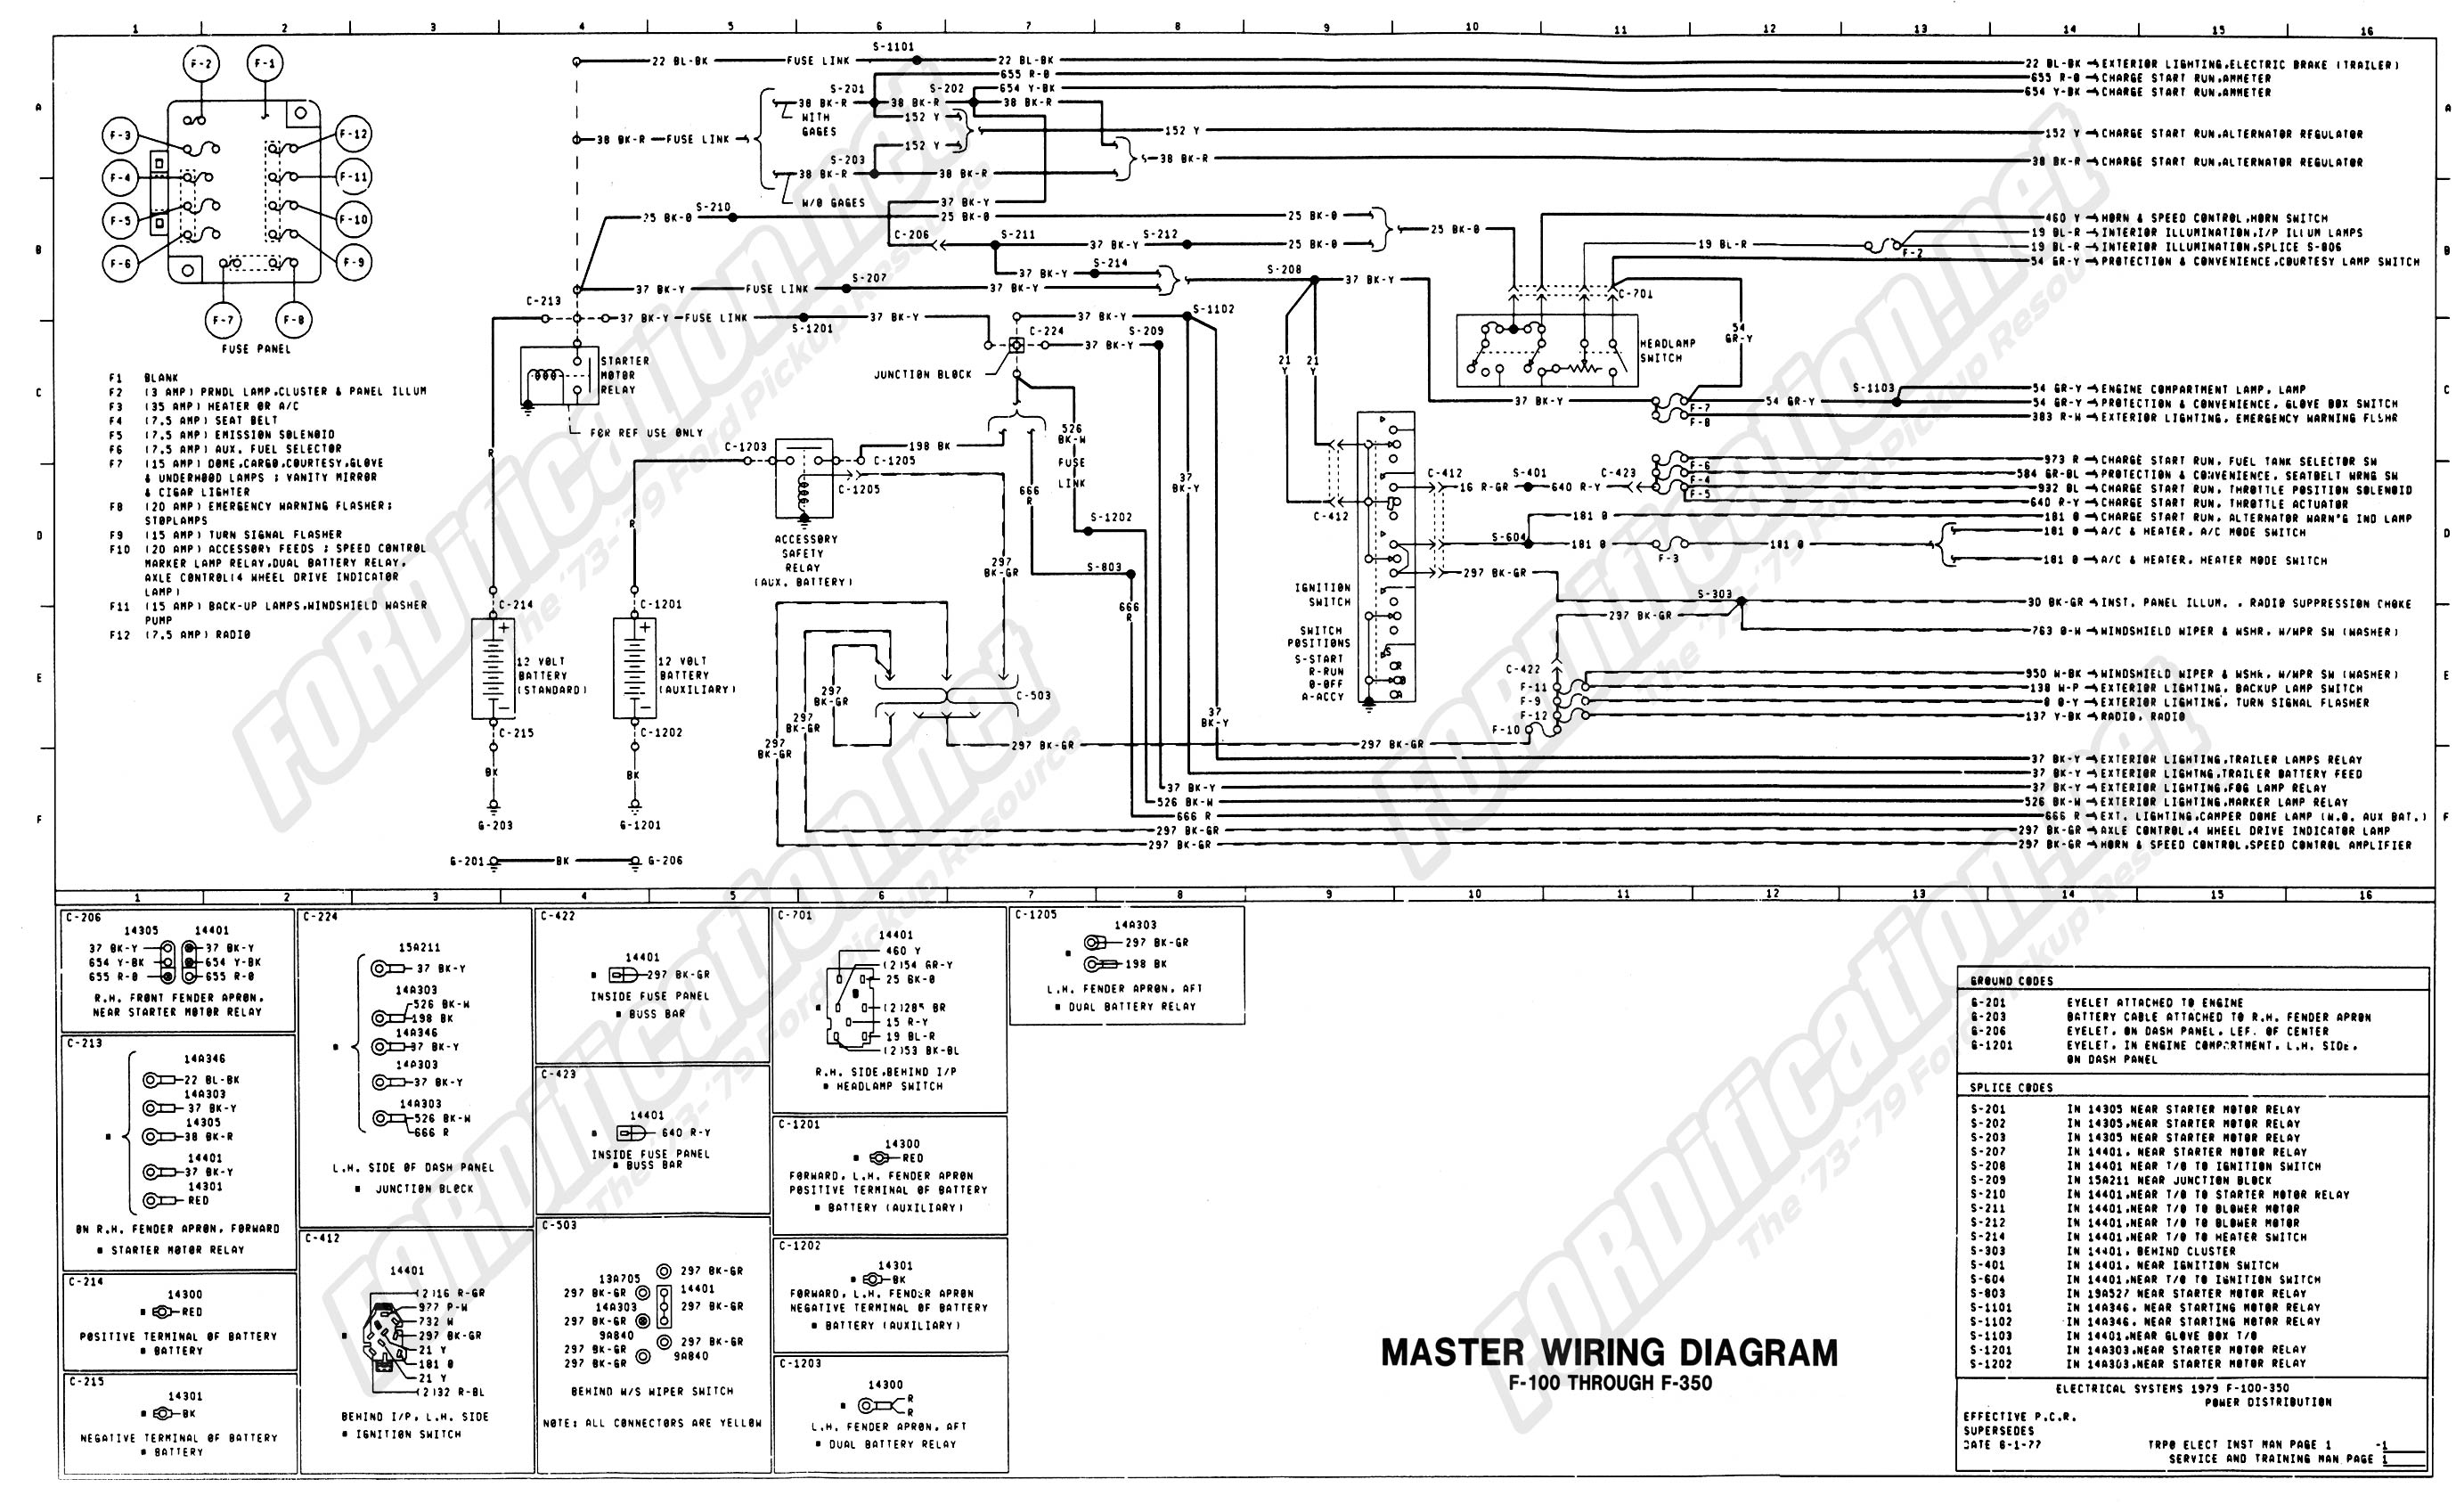 1973 ford f100 ignition wiring diagram